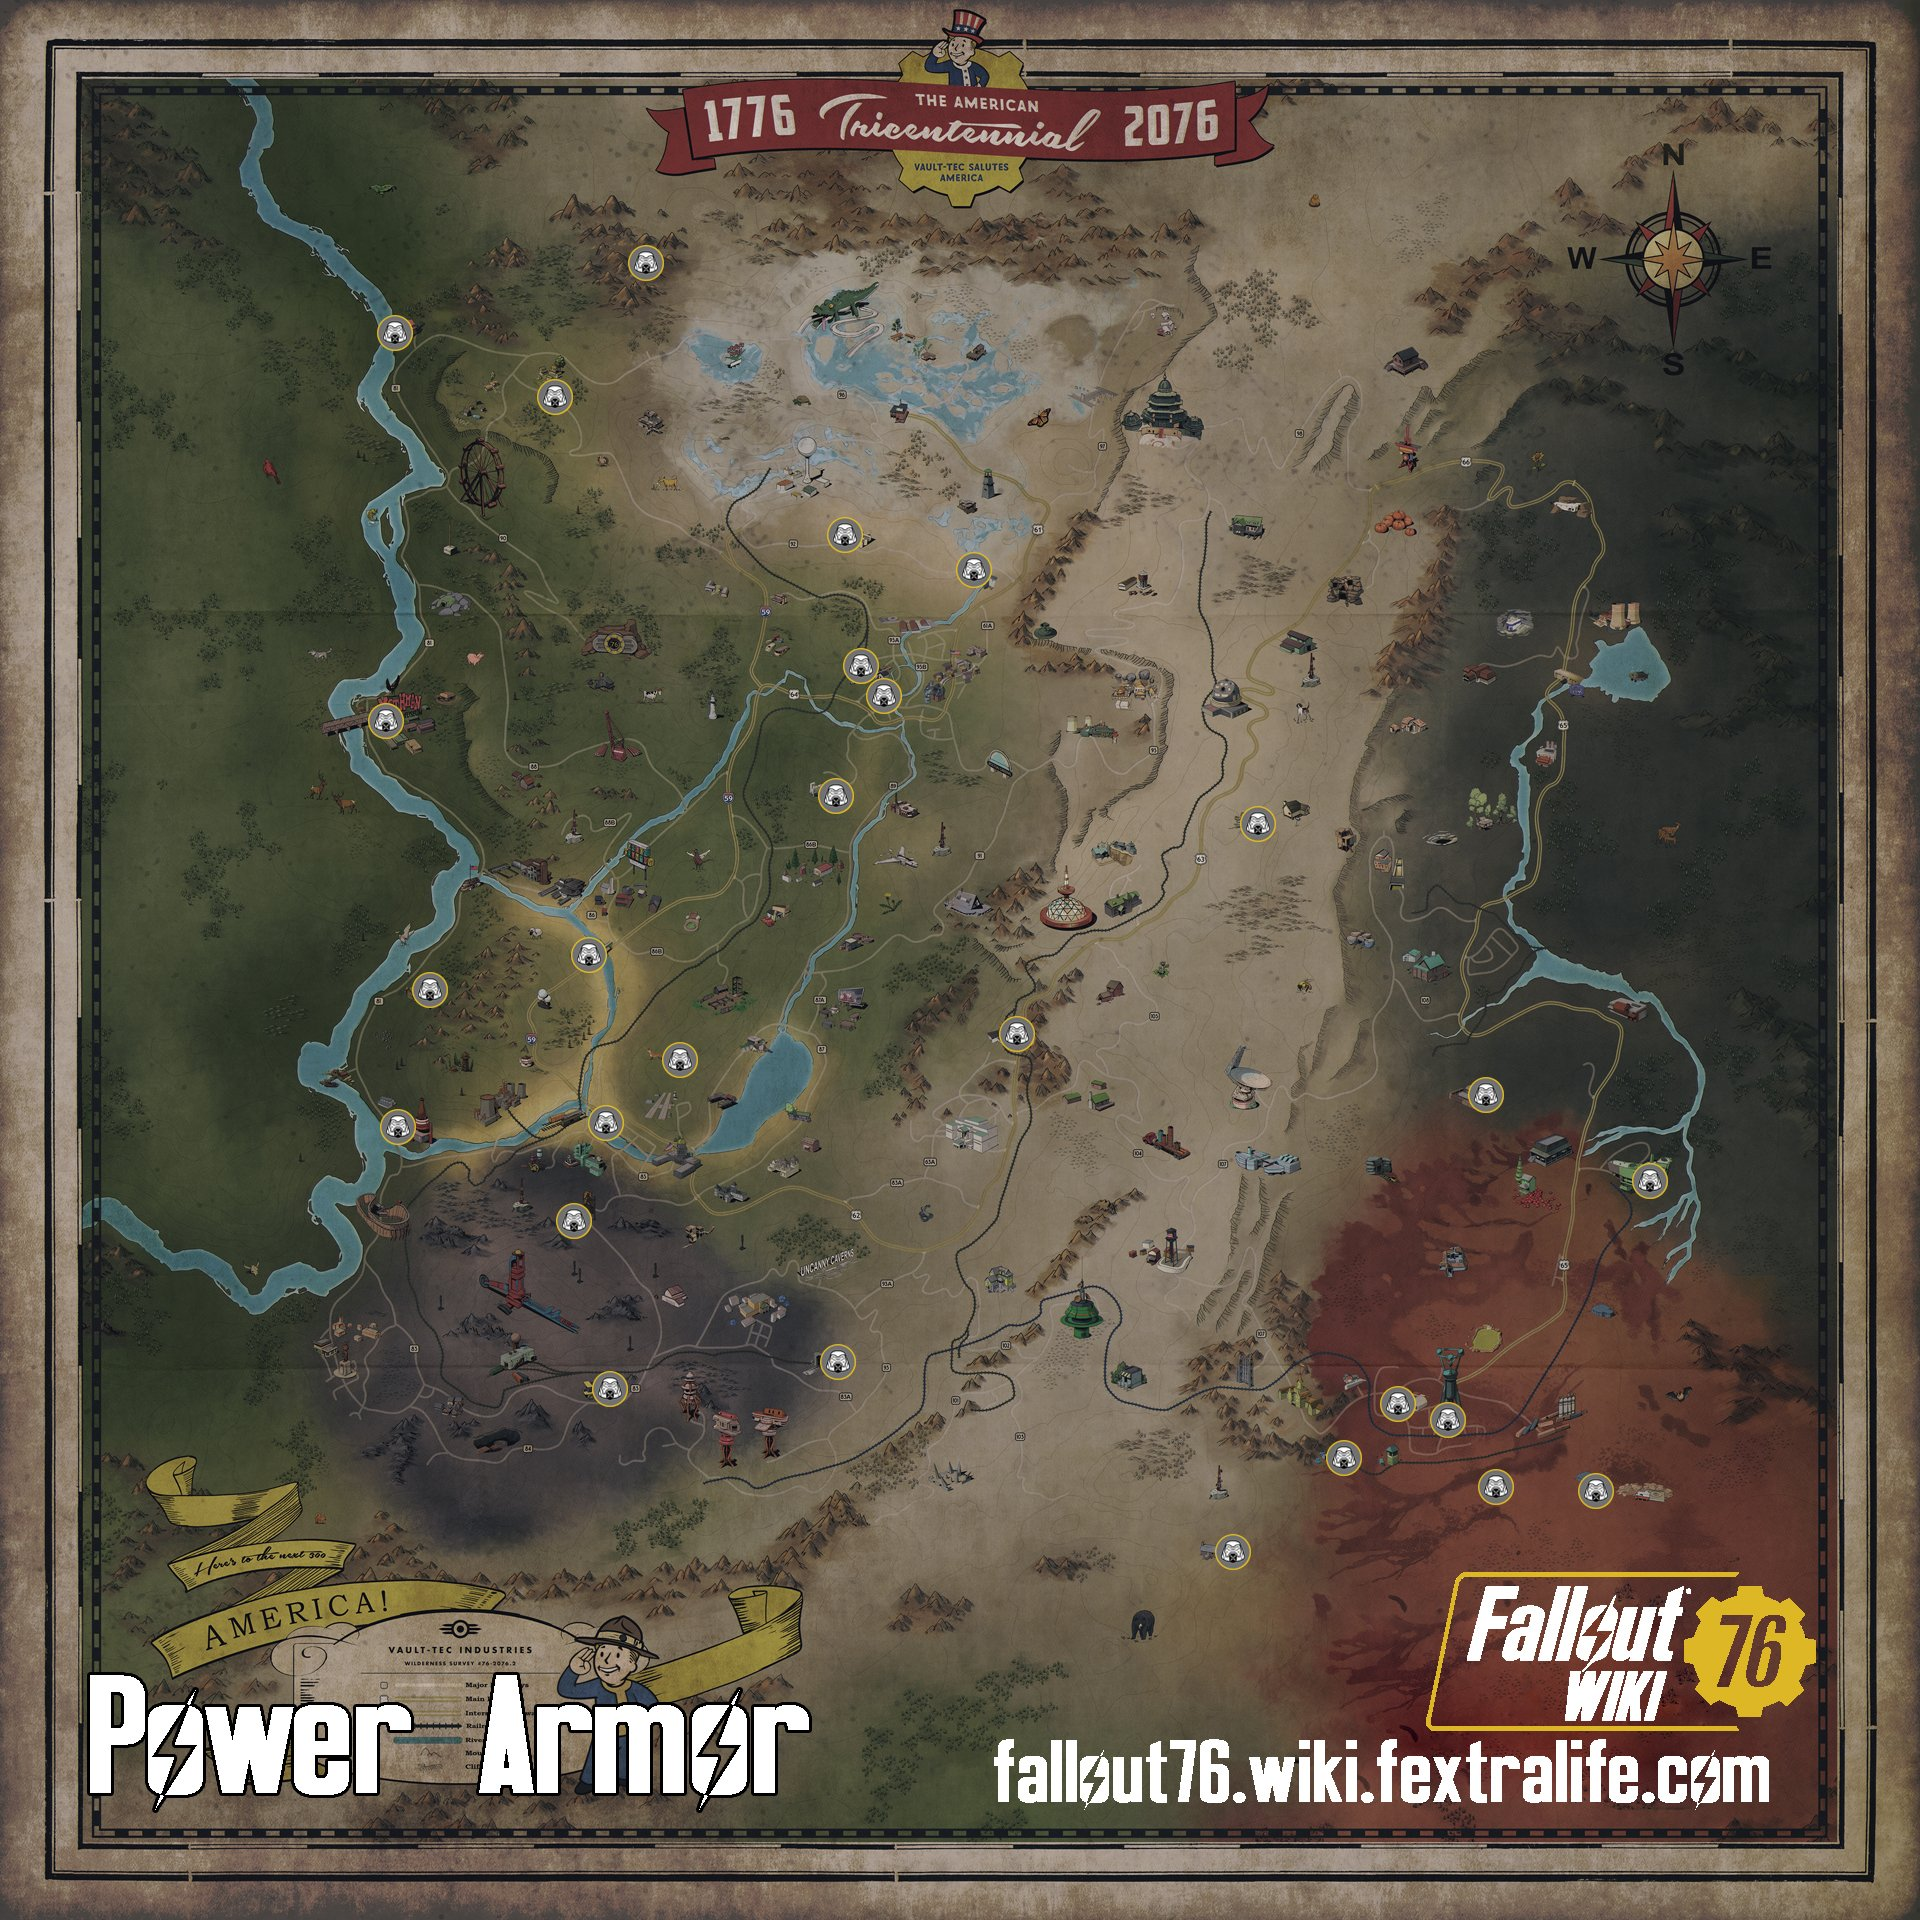 Power Armor | Fallout 76 Wiki